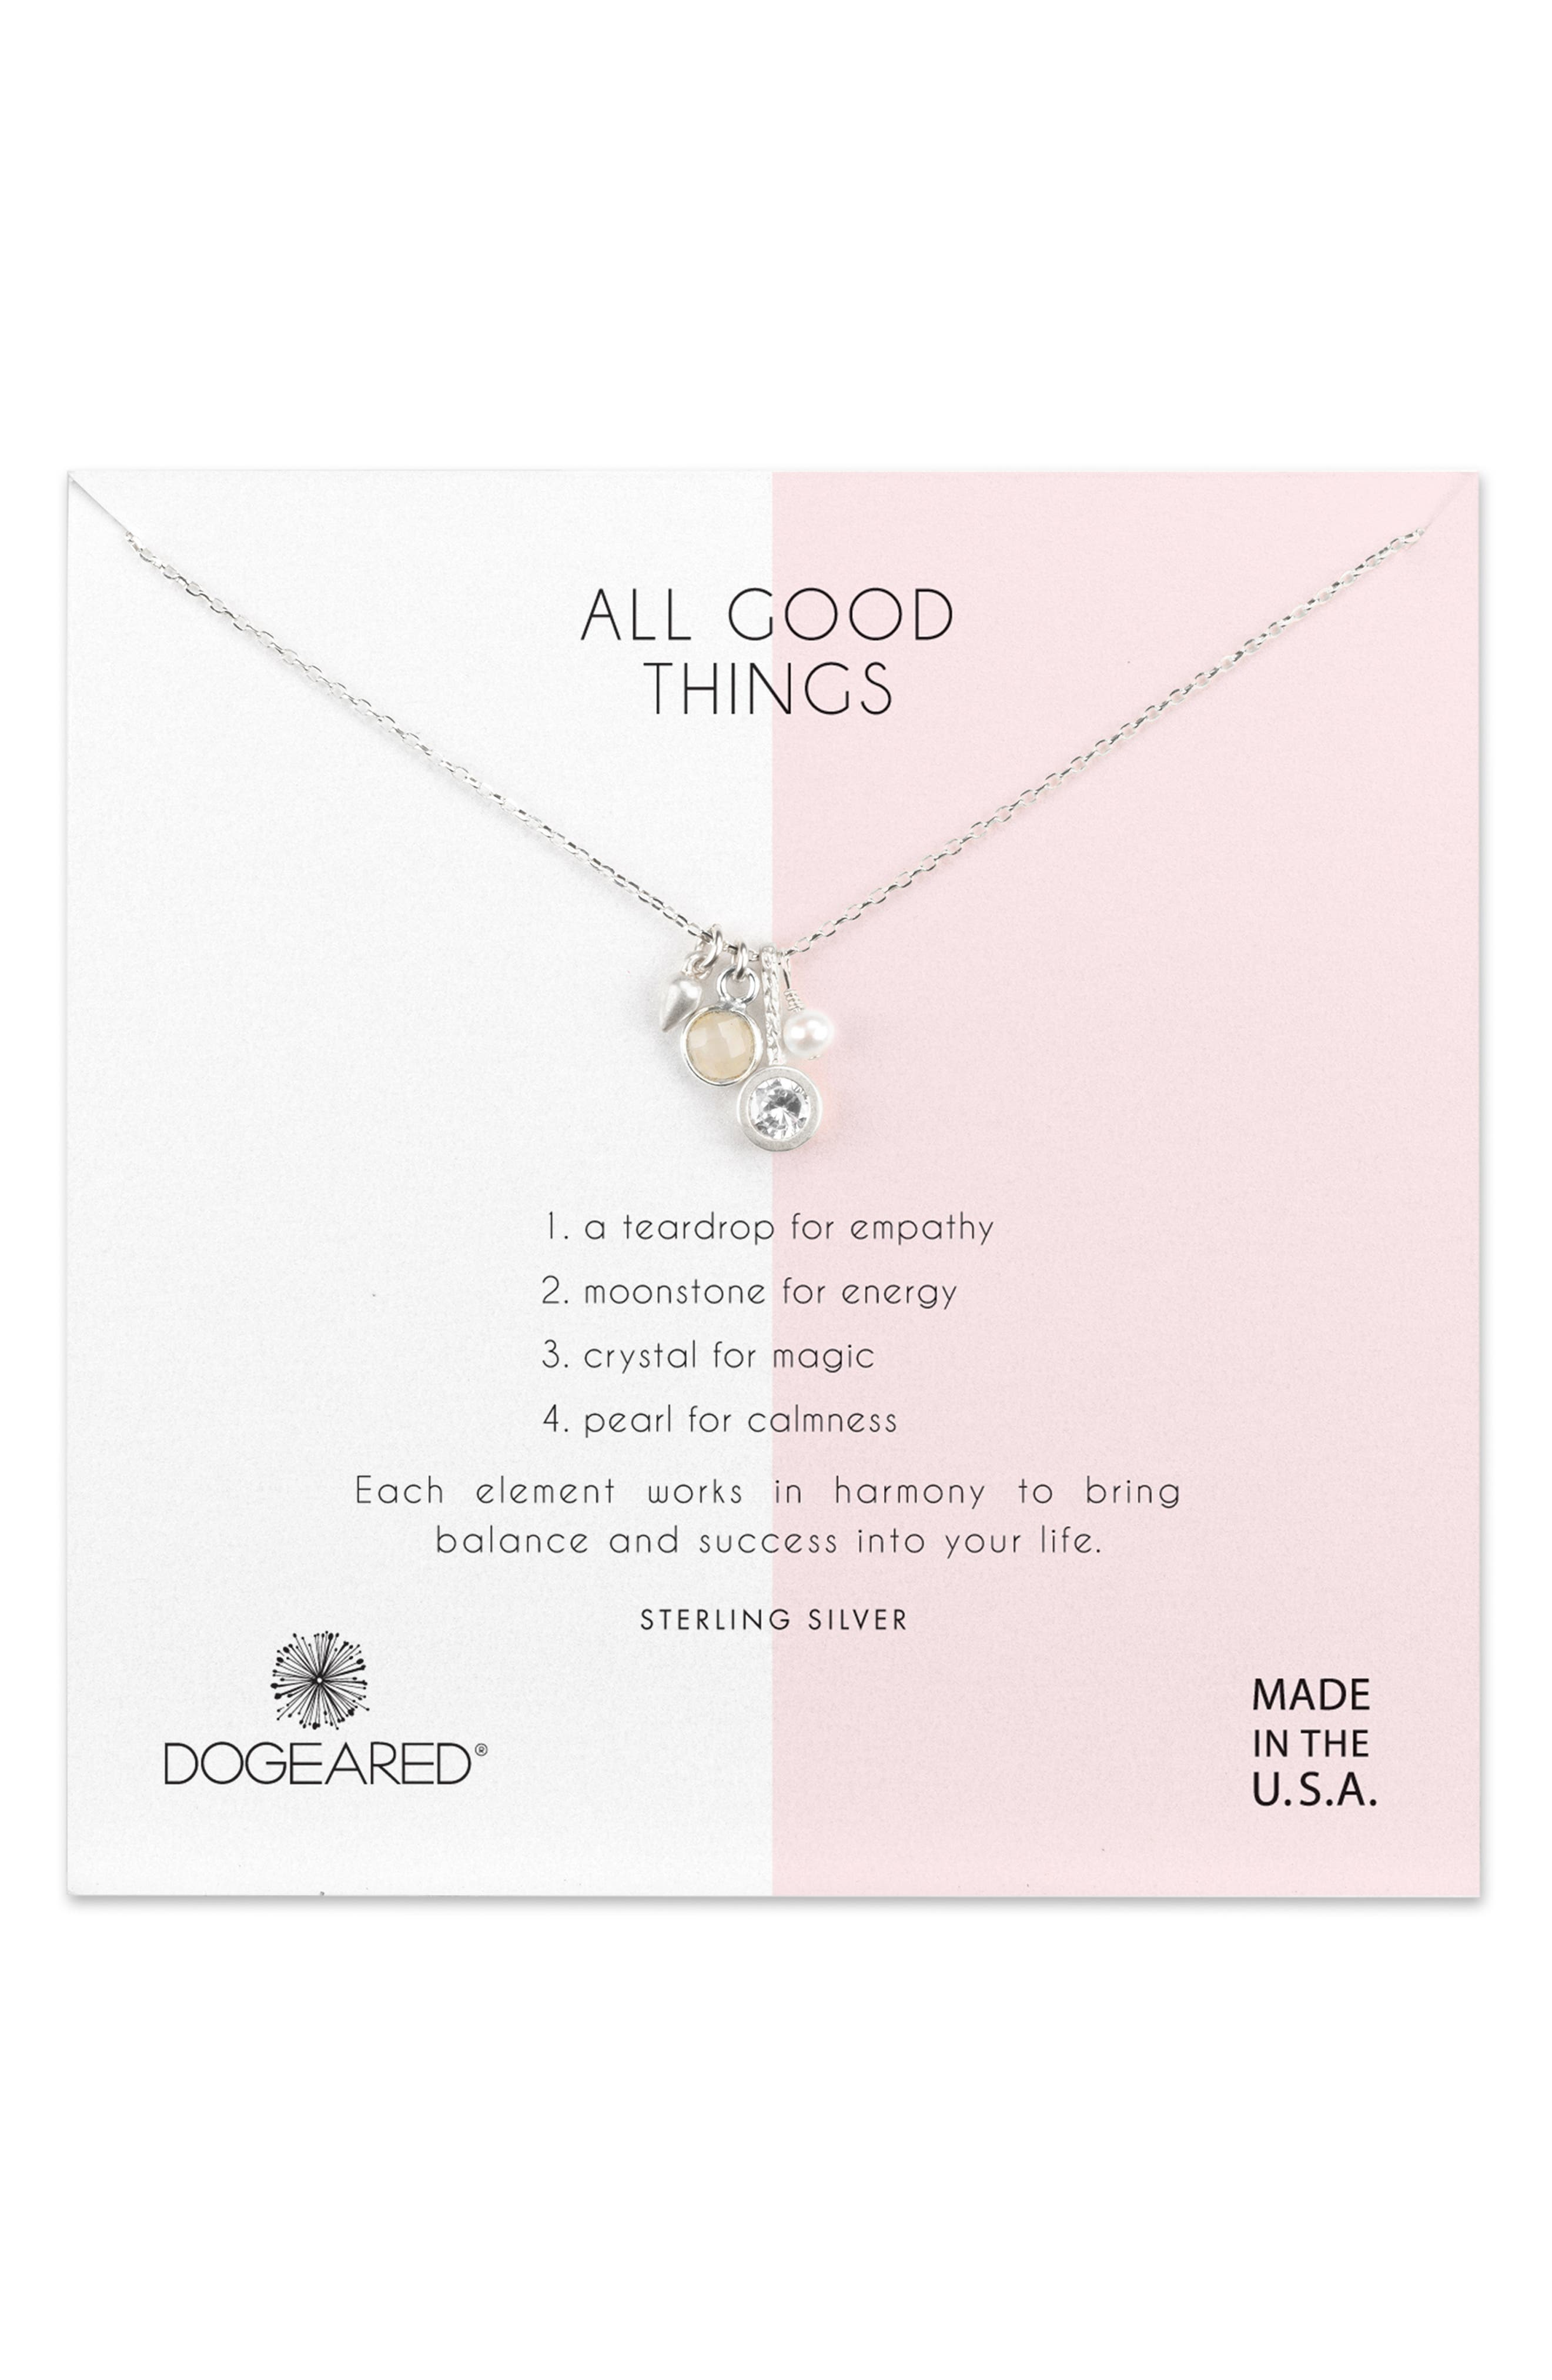 All Good Things Moonstone Pendant Necklace,                             Main thumbnail 1, color,                             040